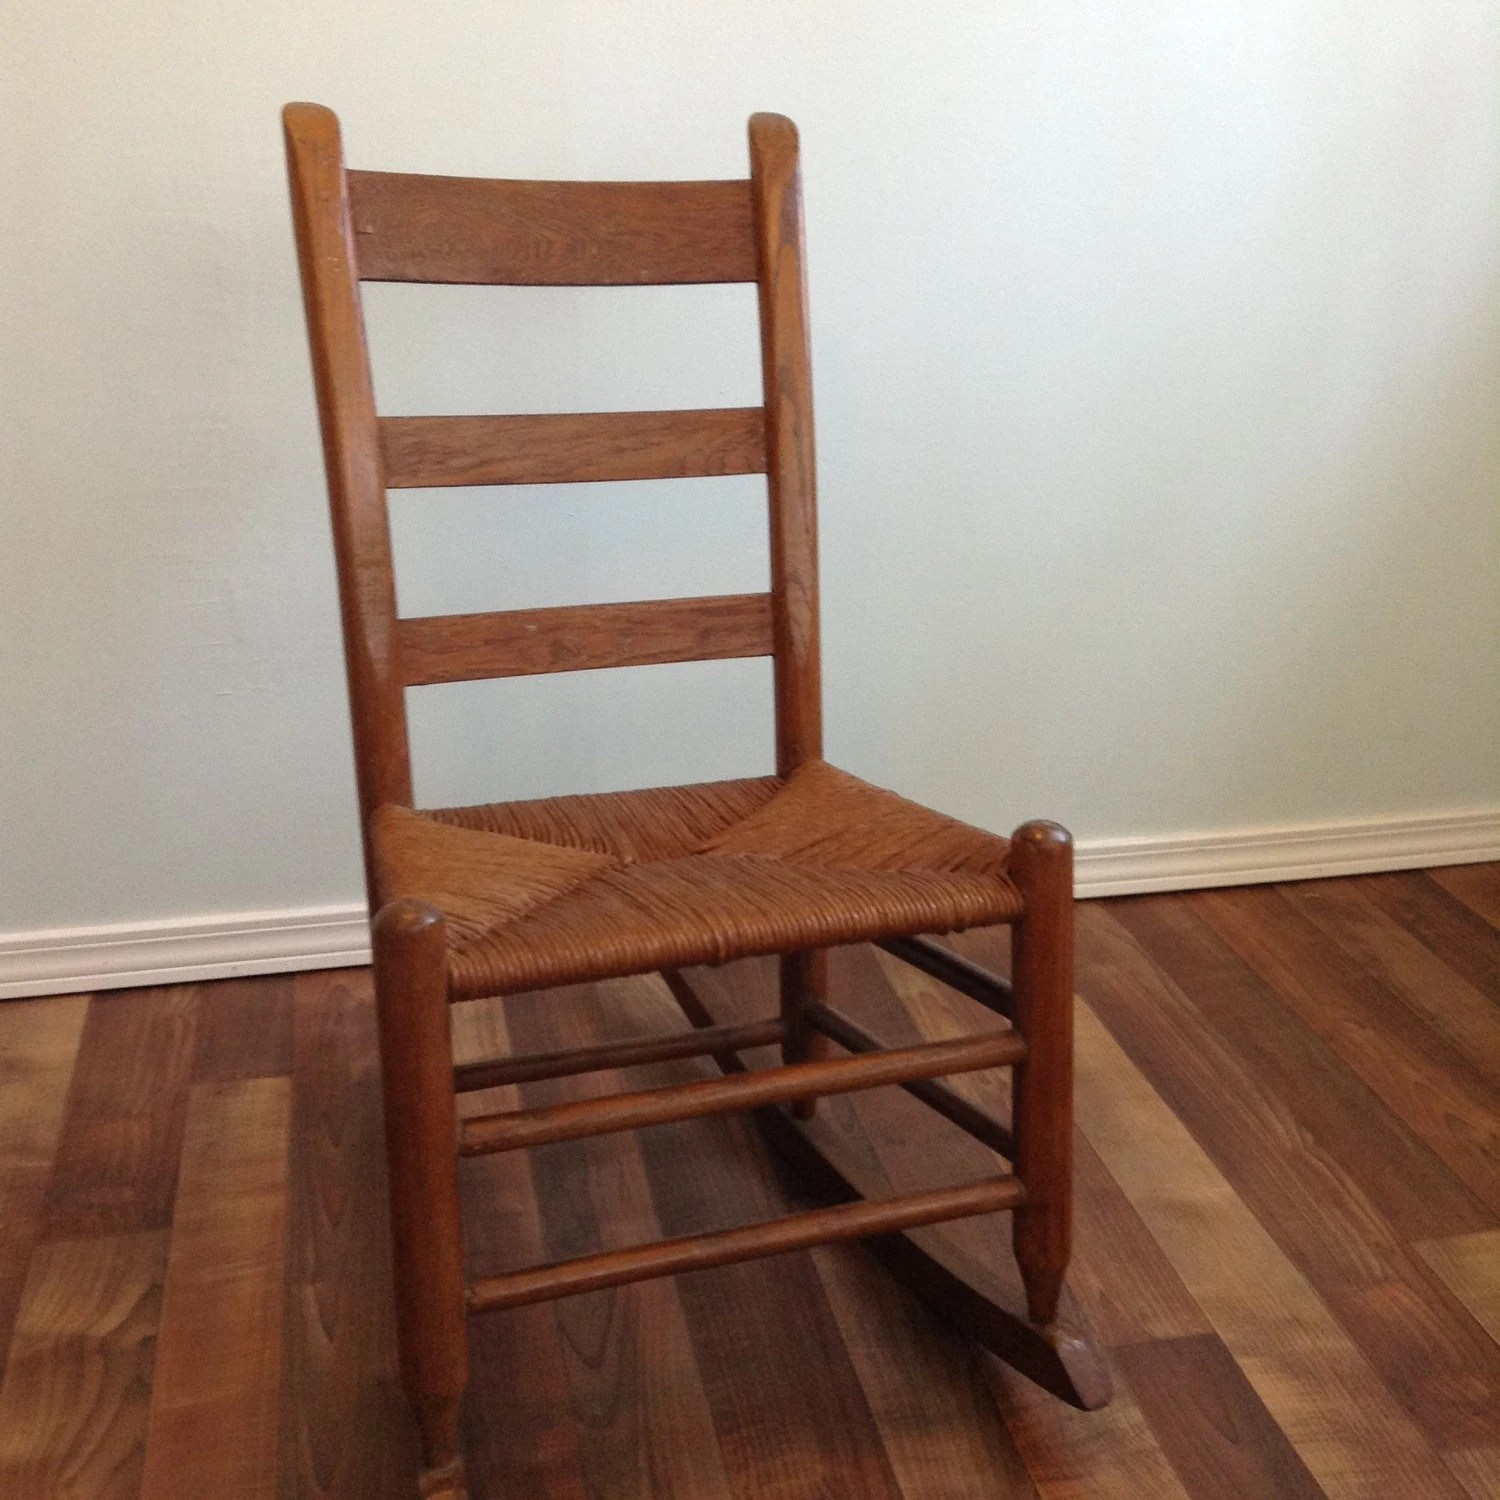 Small Rocking Chair Early Ameican Rush Seat Small Rocking Chair Oak Wood Ladder